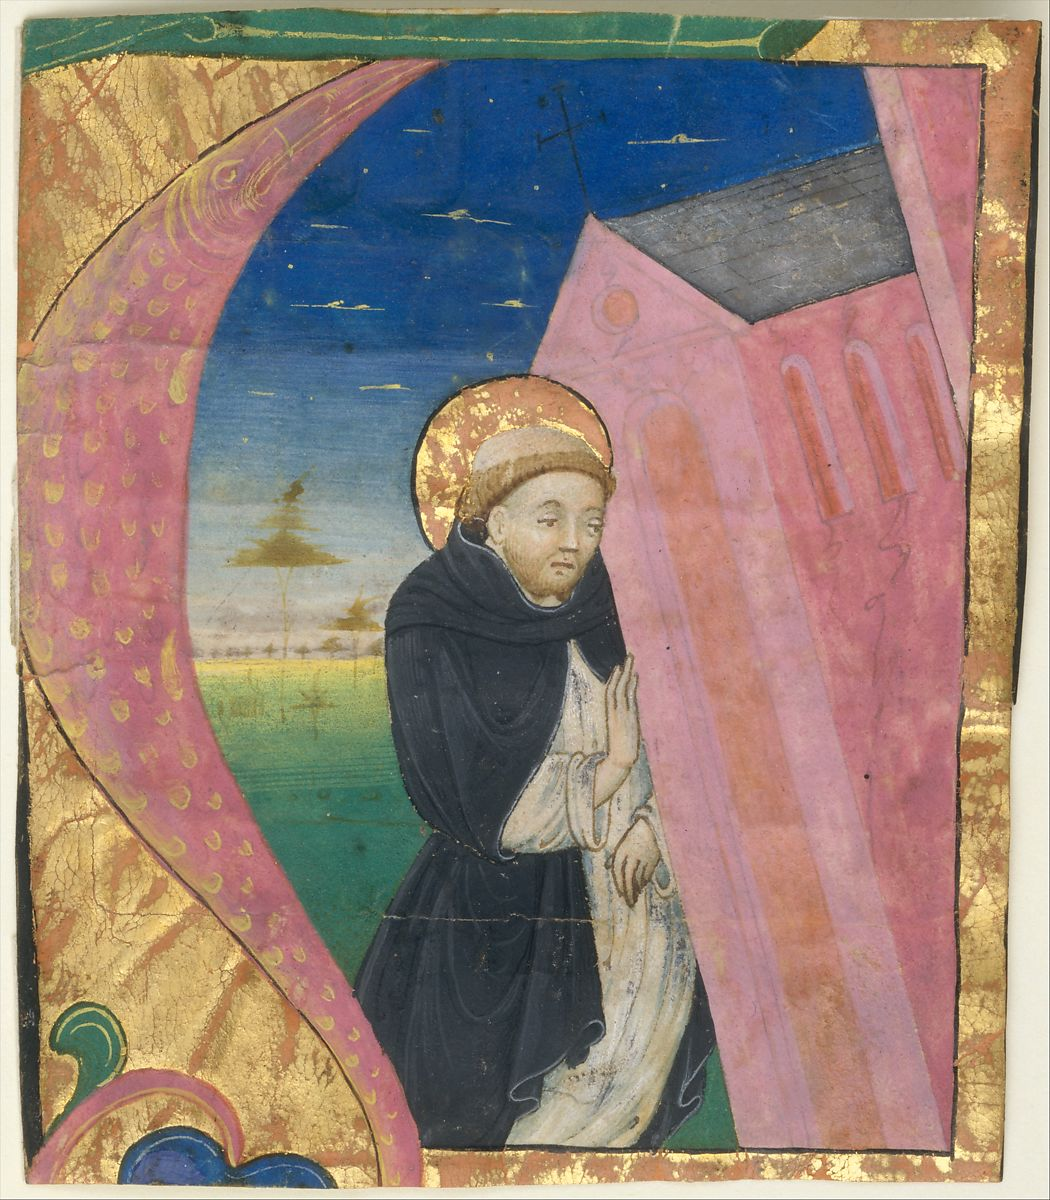 Manuscript Illumination with Saint Dominic Saving the Church of Saint John Lateran in an Initial A, from a Gradual mid-15th century